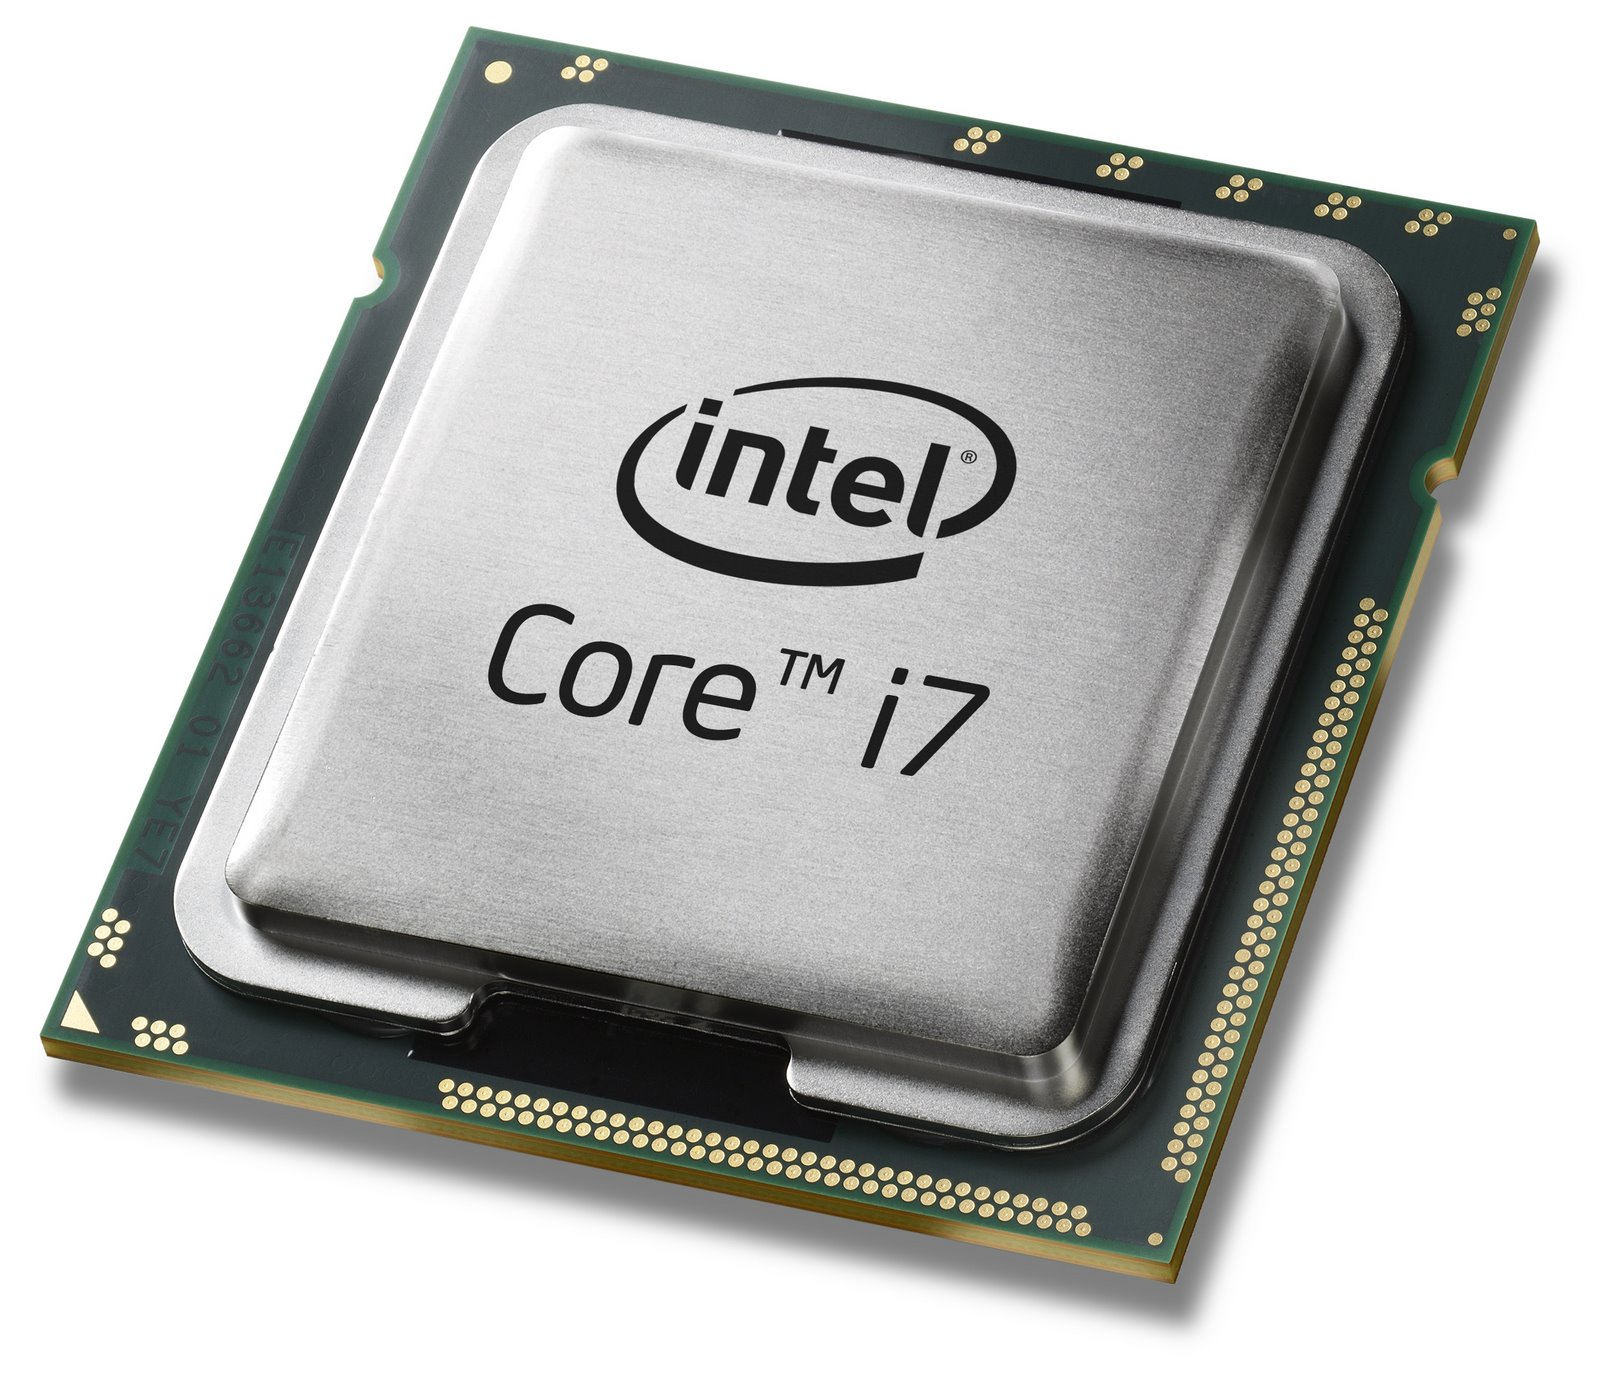 Overview of Processor Thermal Parameters and Their Meanings